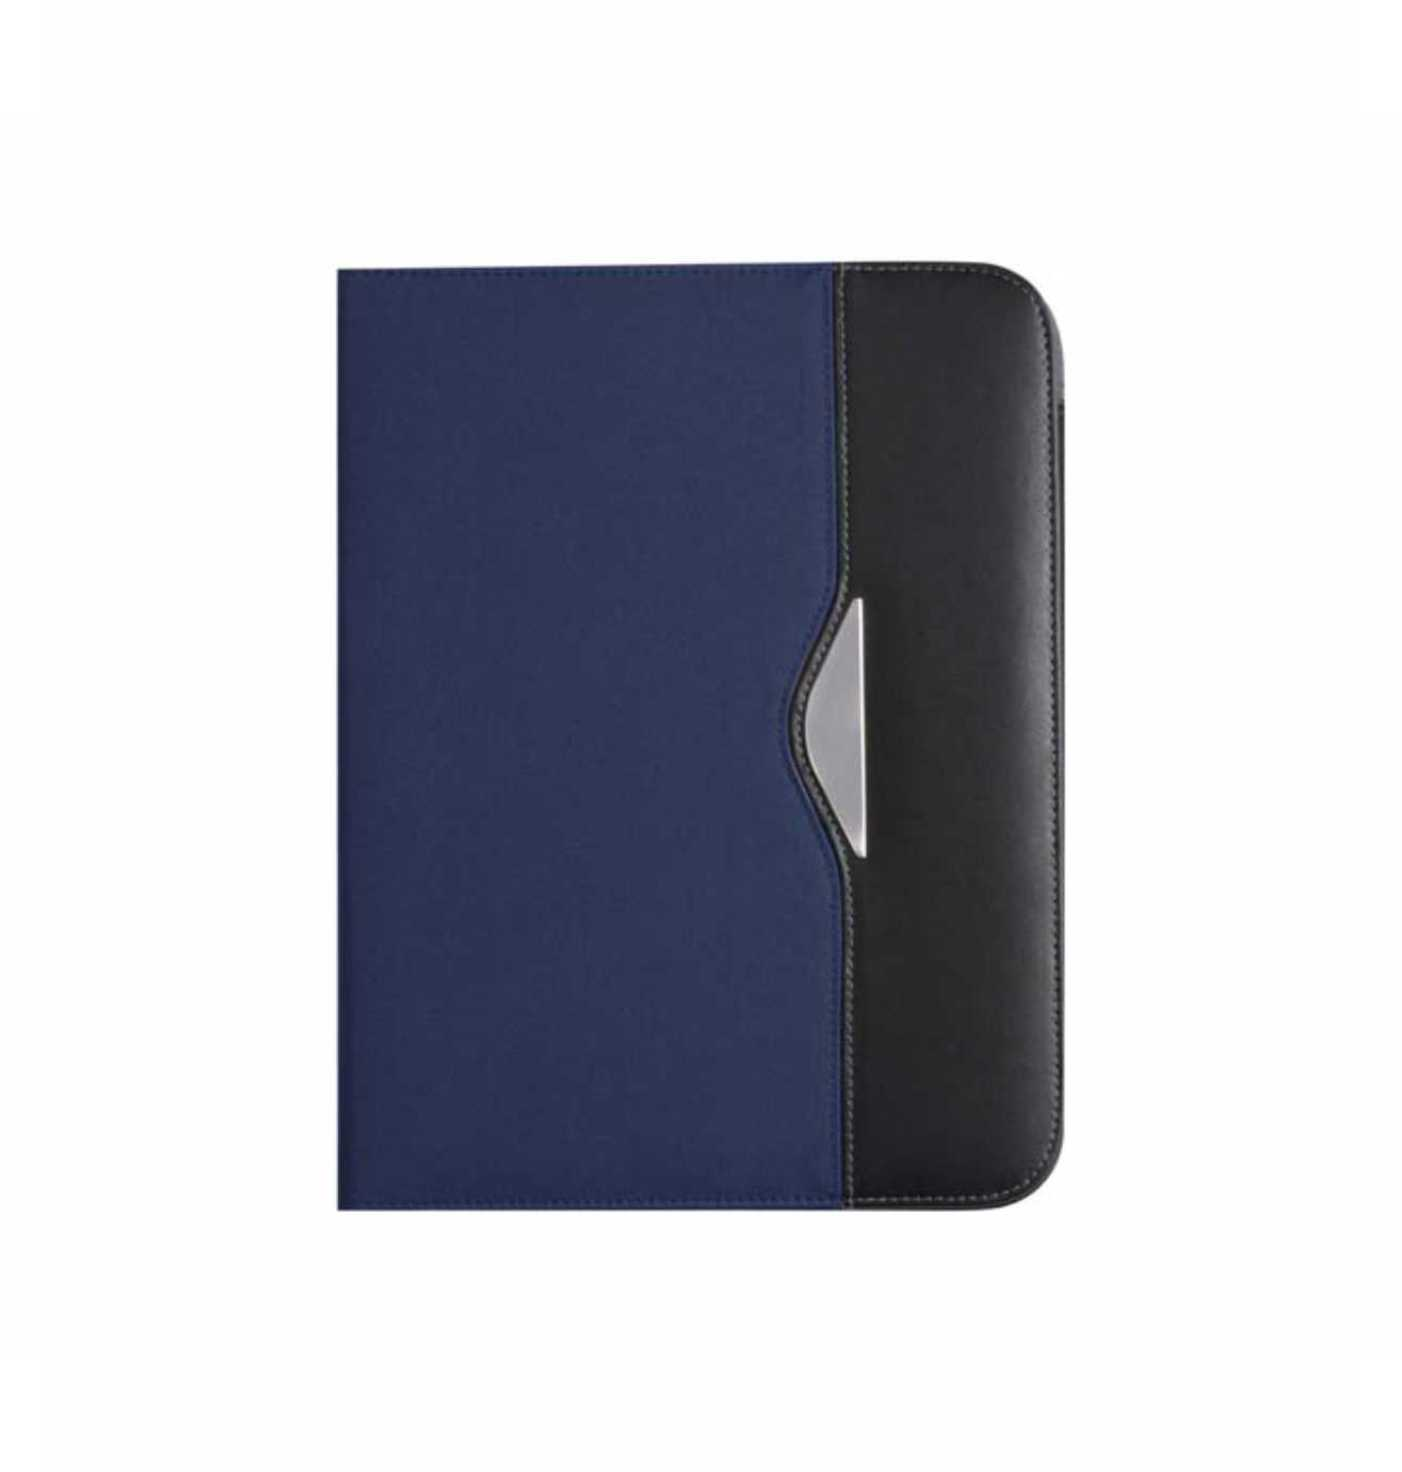 A4 nylon conference folder (70D) with two large internal pockets and two small business card pockets, nylon pen loop and a thirty page lined note pad. - Blue giv-866805